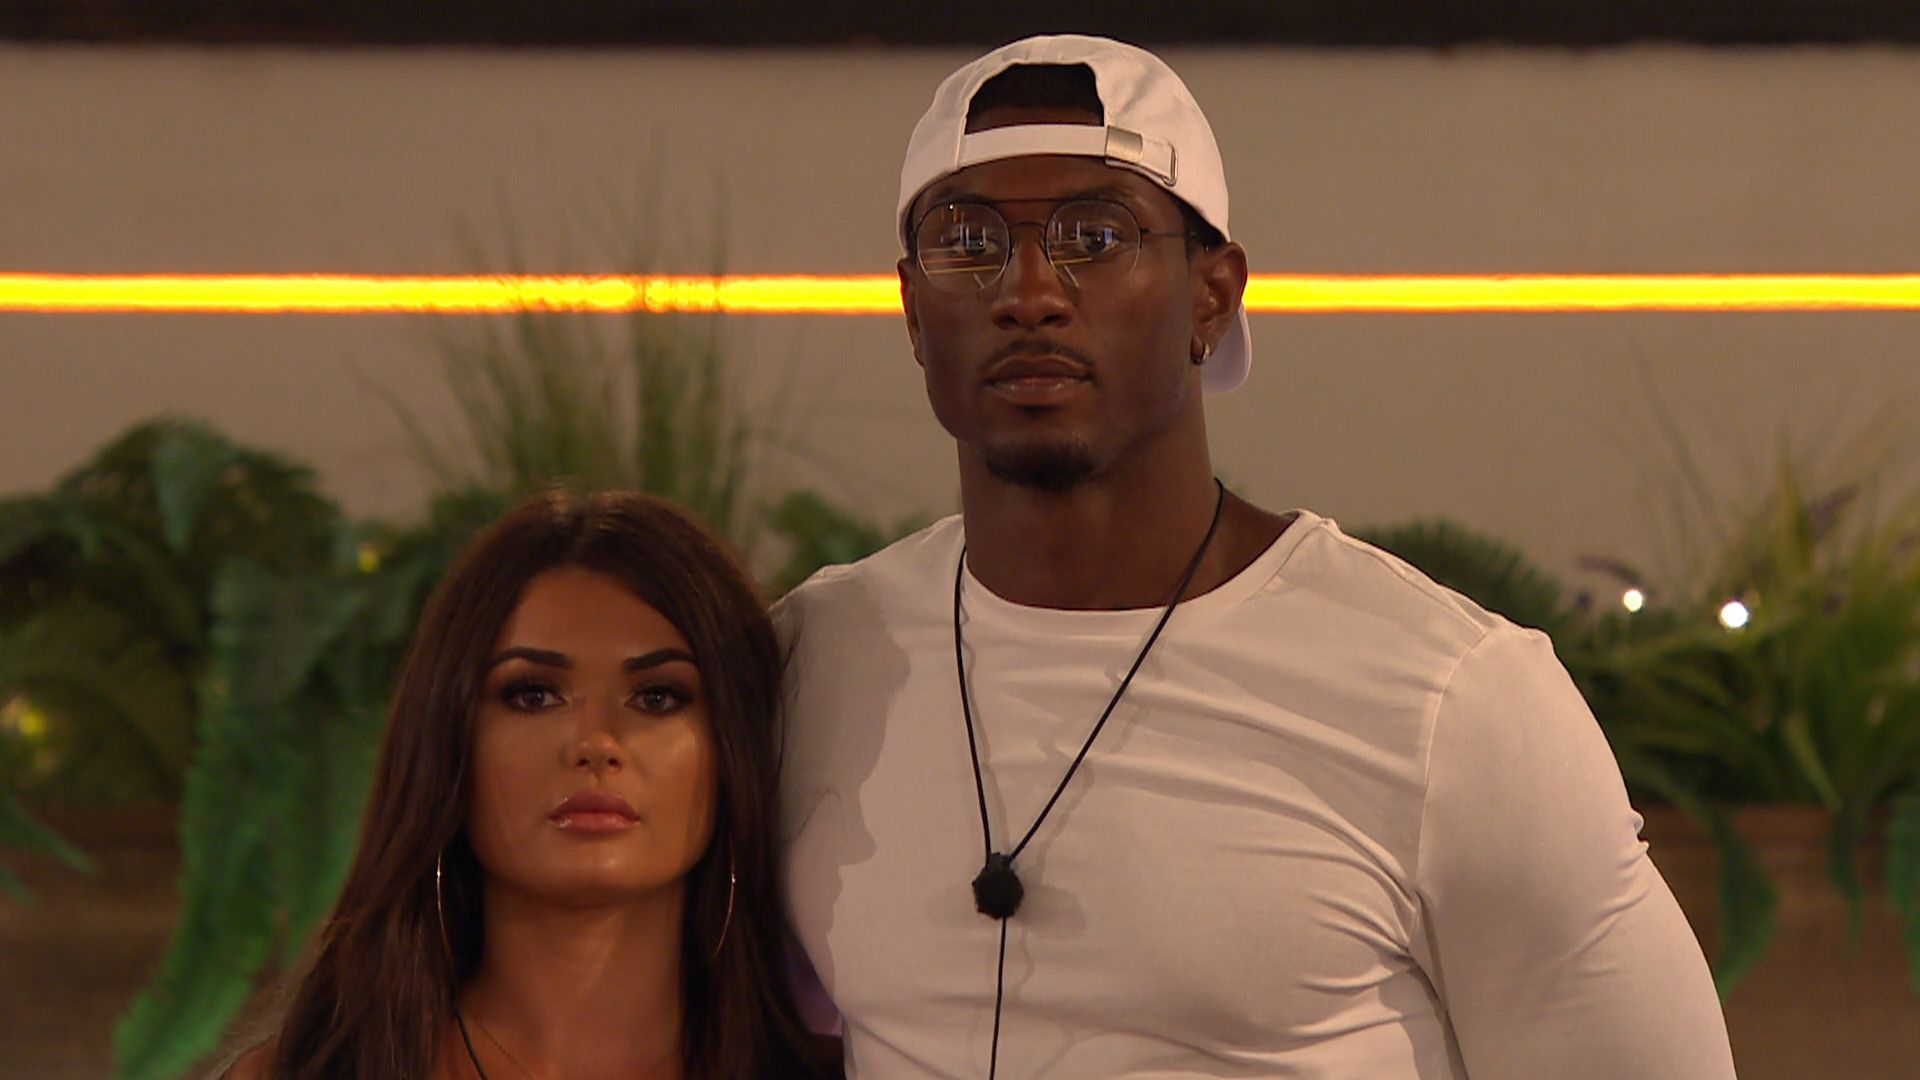 Love Island's Ovie Soko responds to India Reynolds cheating claims